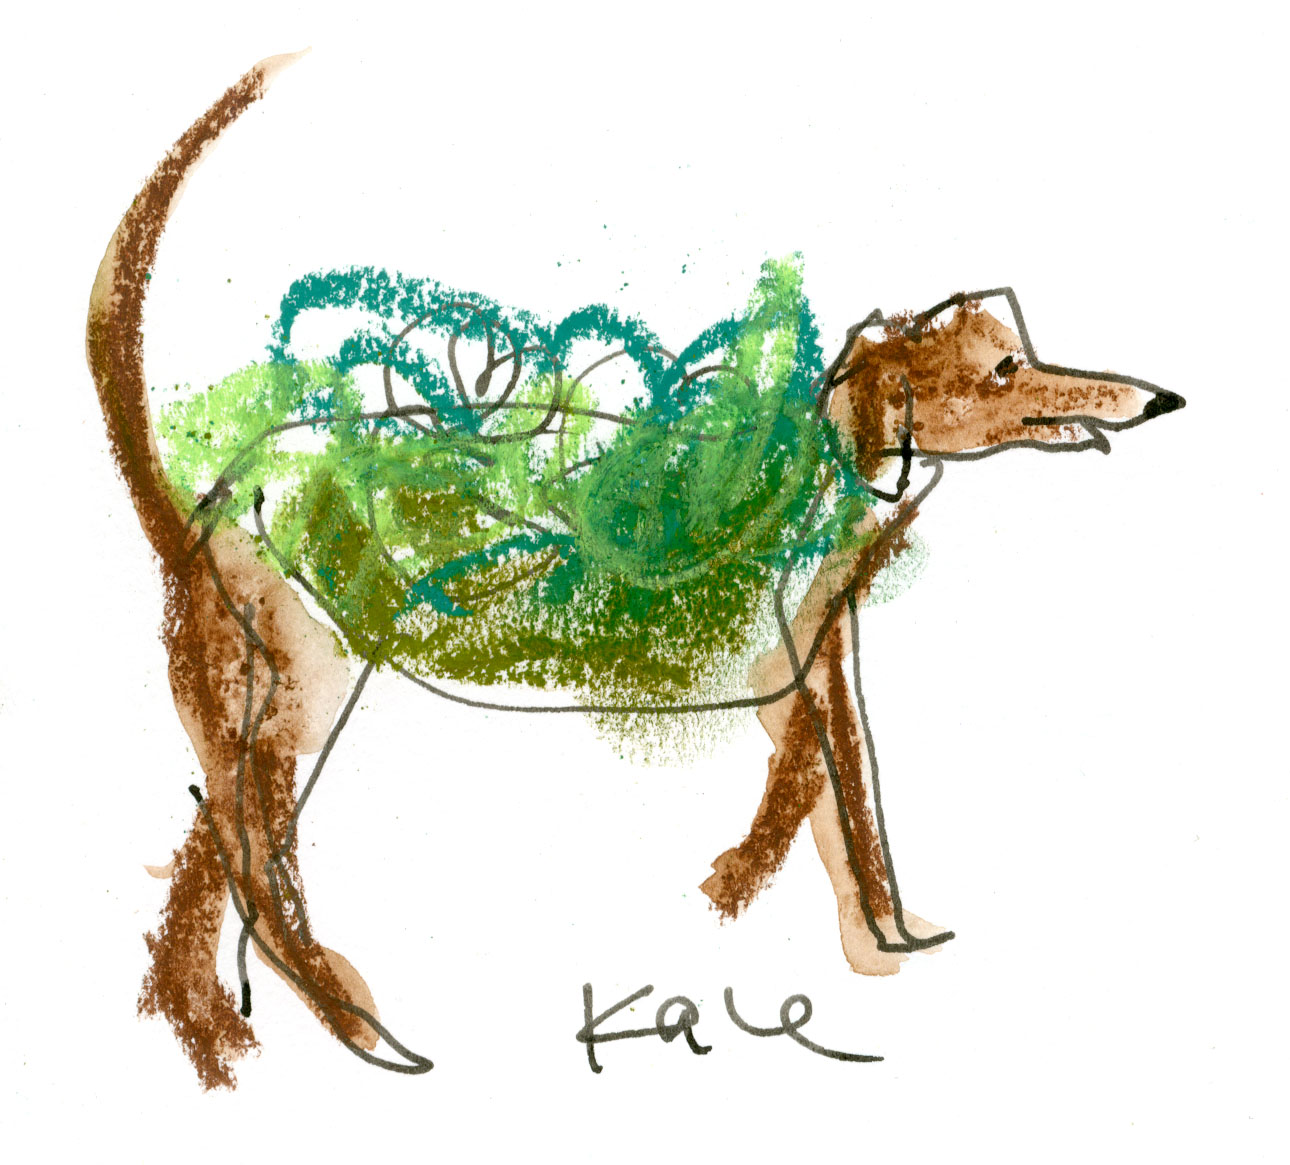 This dog was wearing a green shirt with kale glued all over it © Carly Larsson 2014